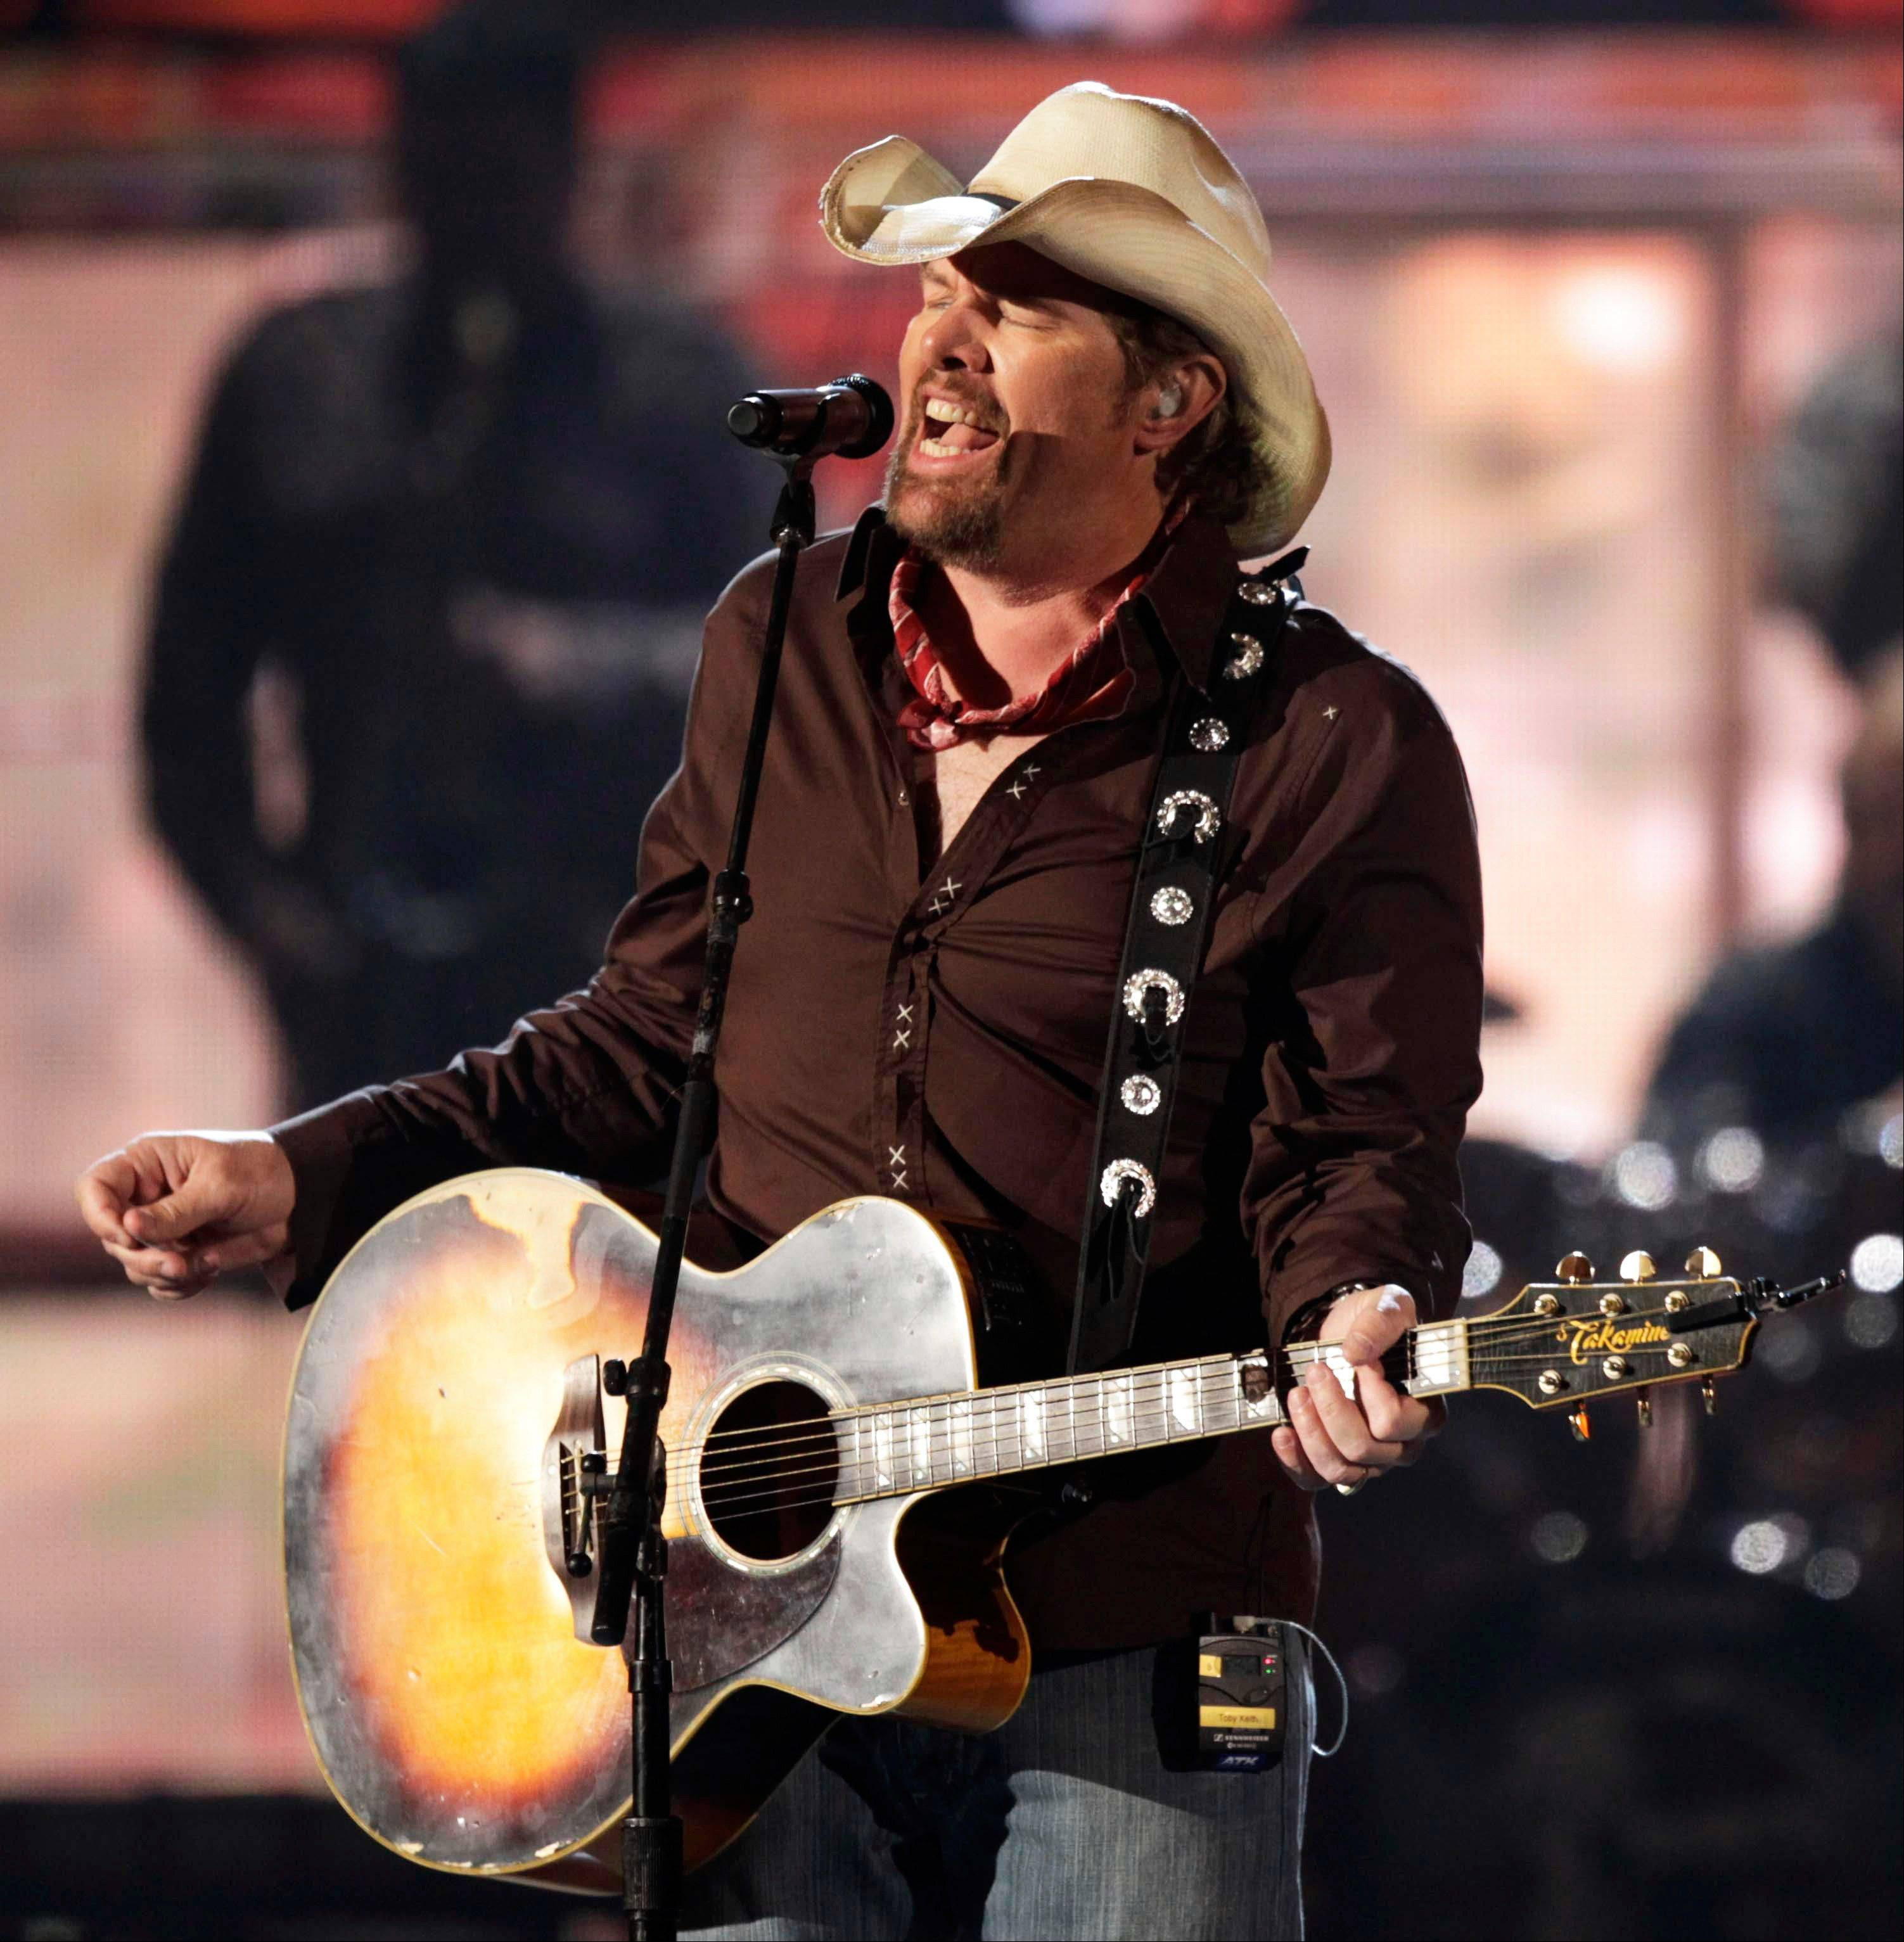 Toby Keith had his gall bladder removed recently and was forced to reschedule his Aug. 2 show at Fort McCoy in Sparta, Wis. That concert date has been rescheduled to Aug. 30.